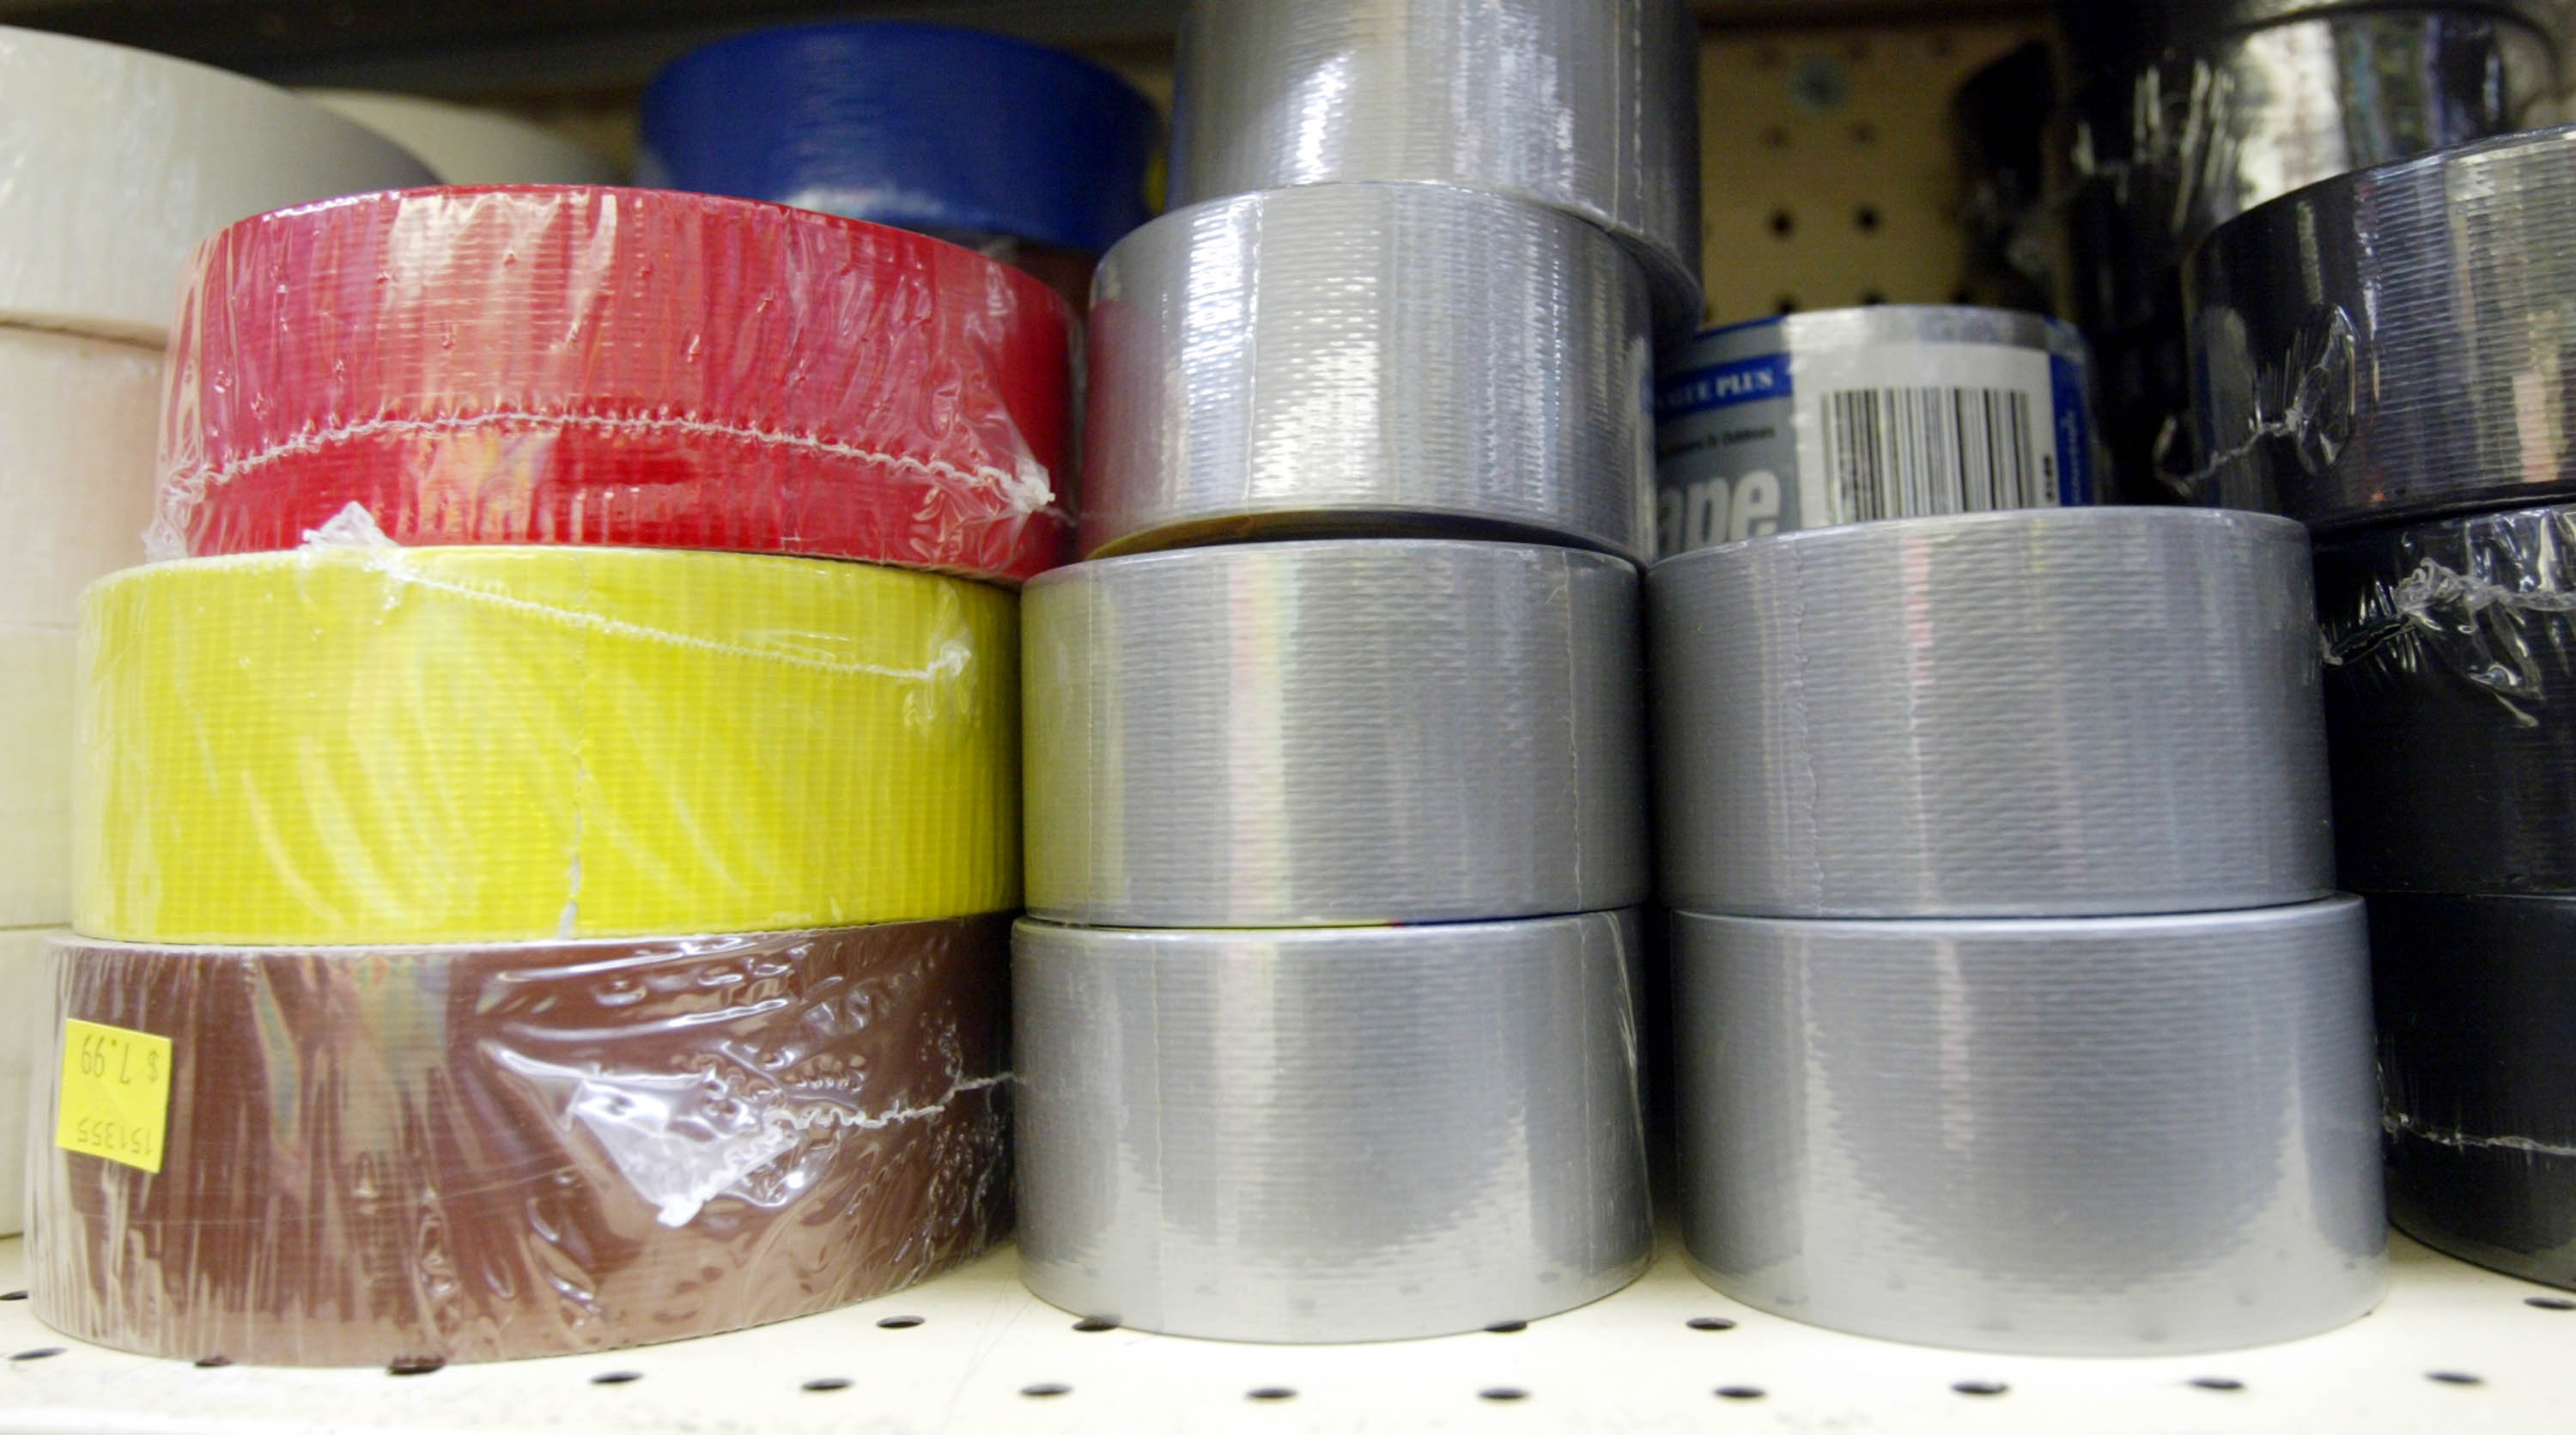 Buying inexpensive duct tape didn't pay off for one reader. (Photo by Mario Tama/Getty Images)